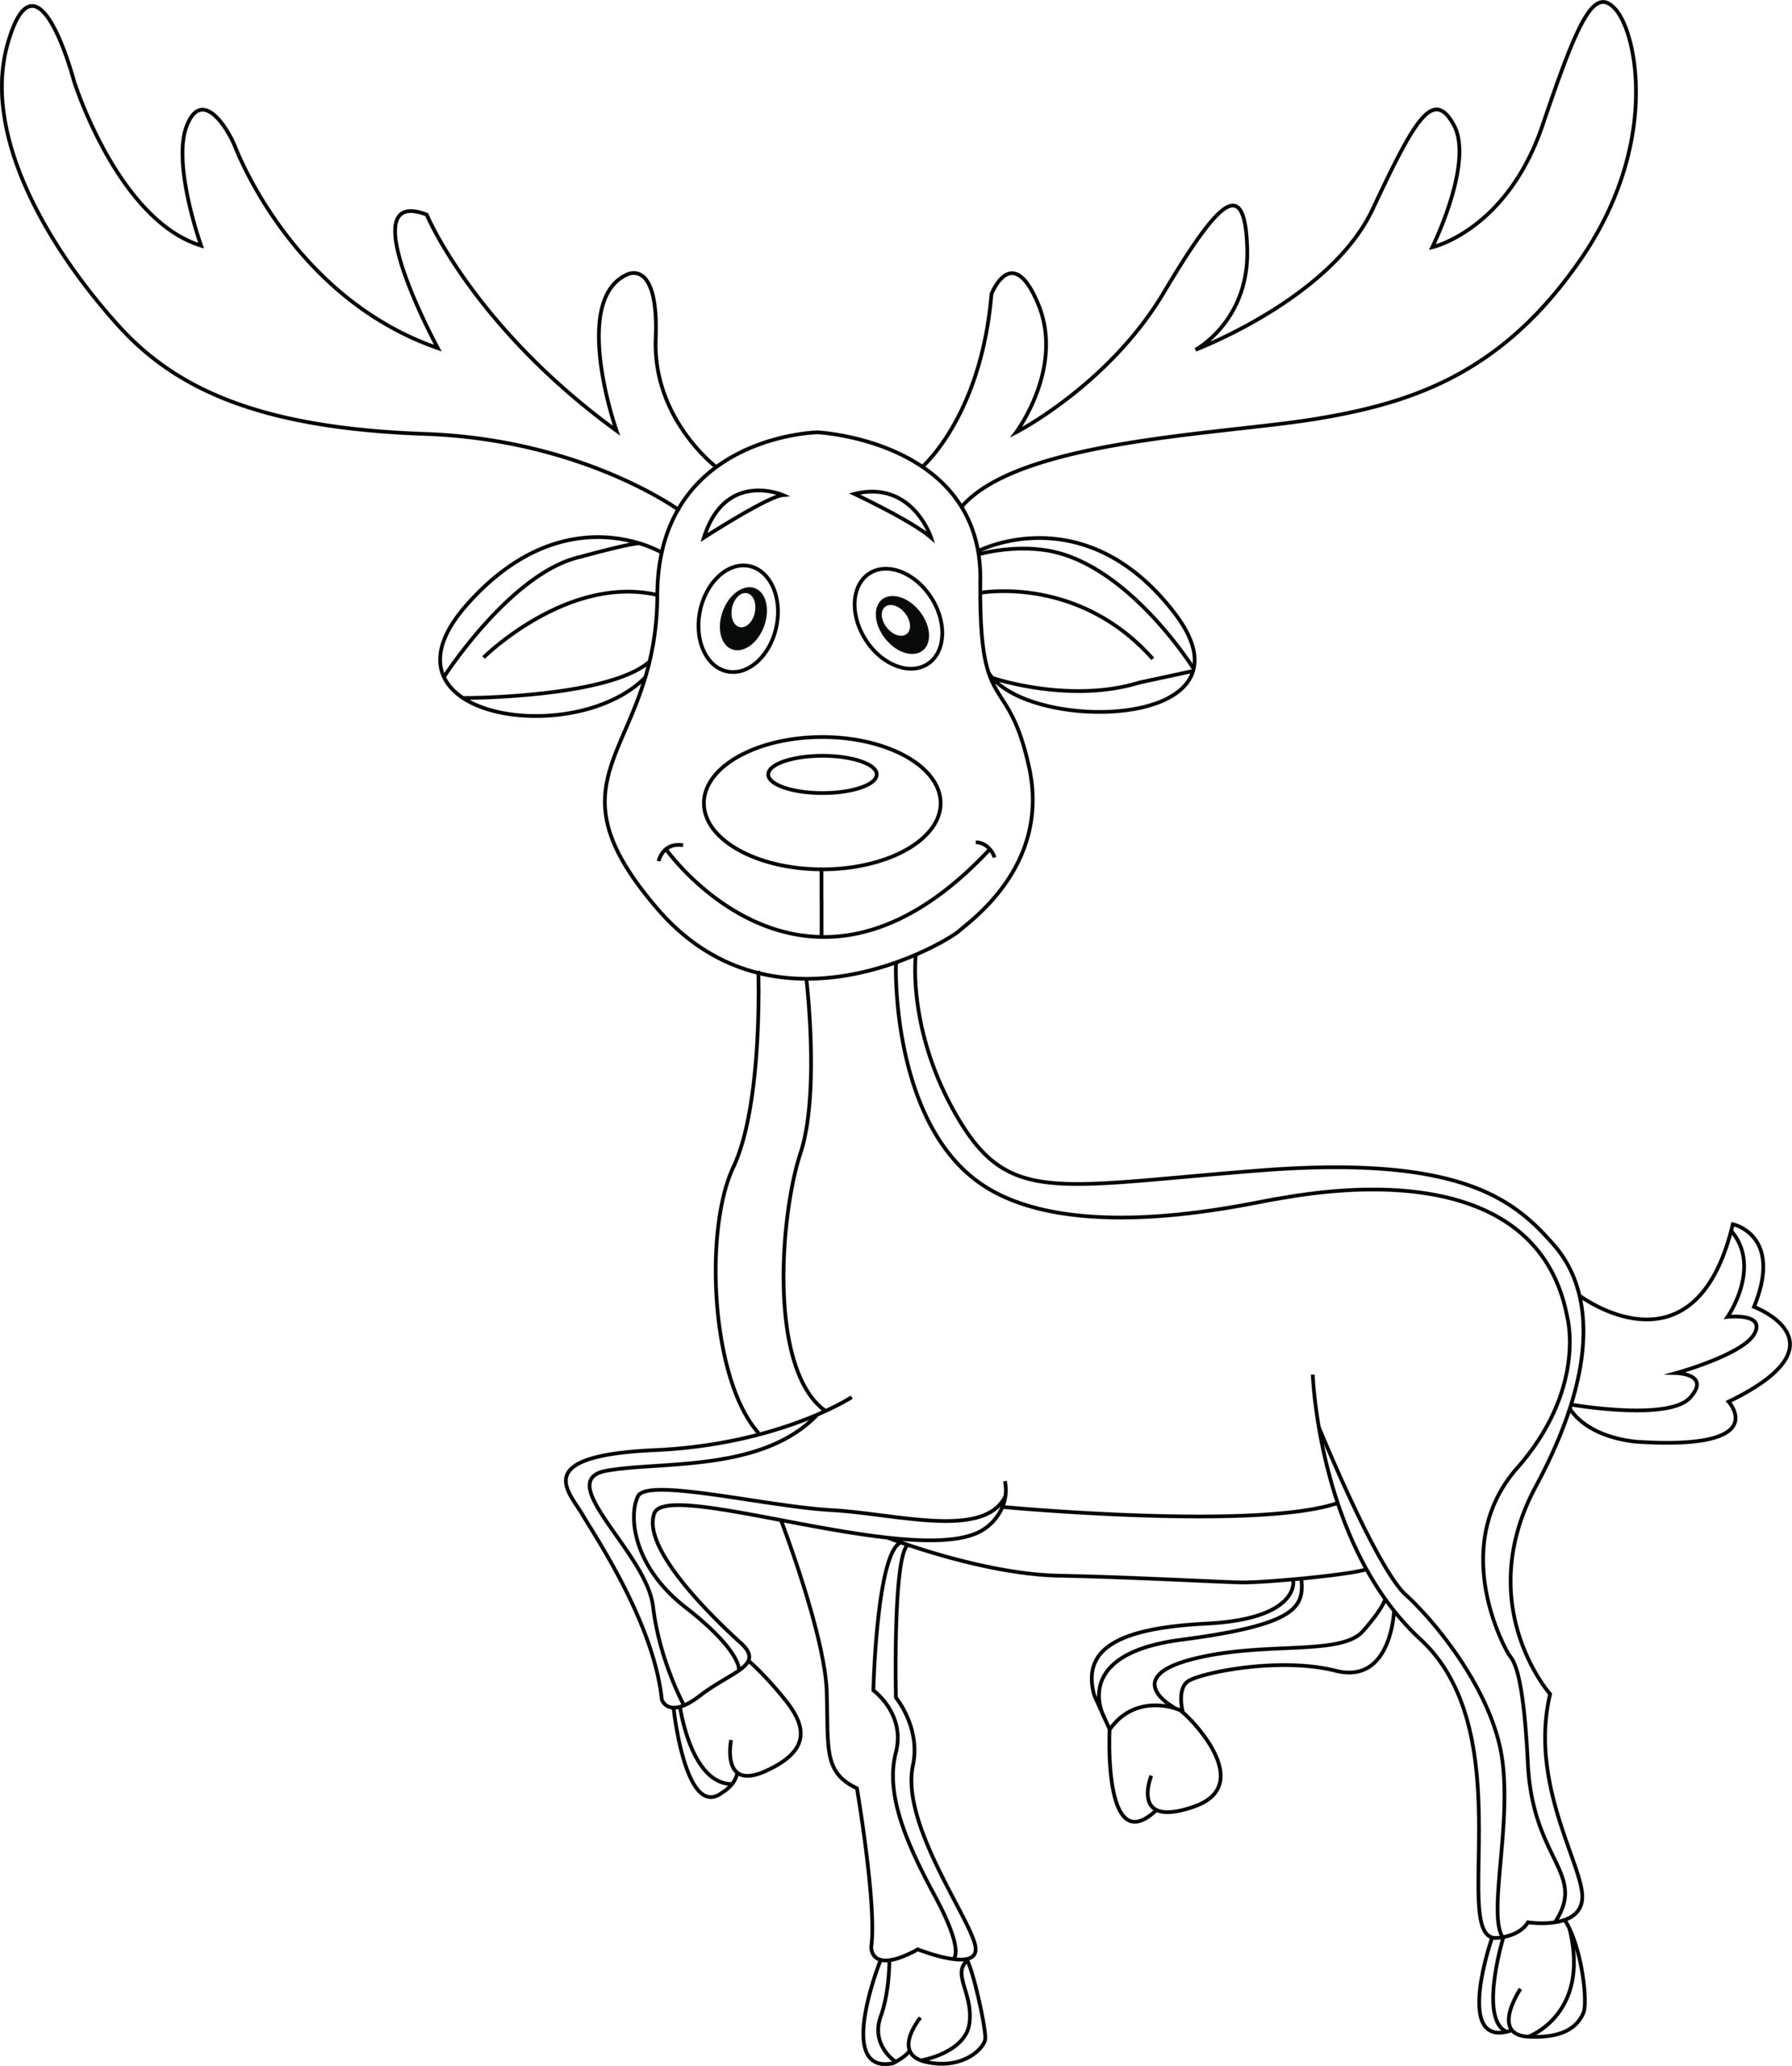 file deer coloring commons character slippers texture of tempera paint skeleton sheet coloring pages Deer Coloring Page